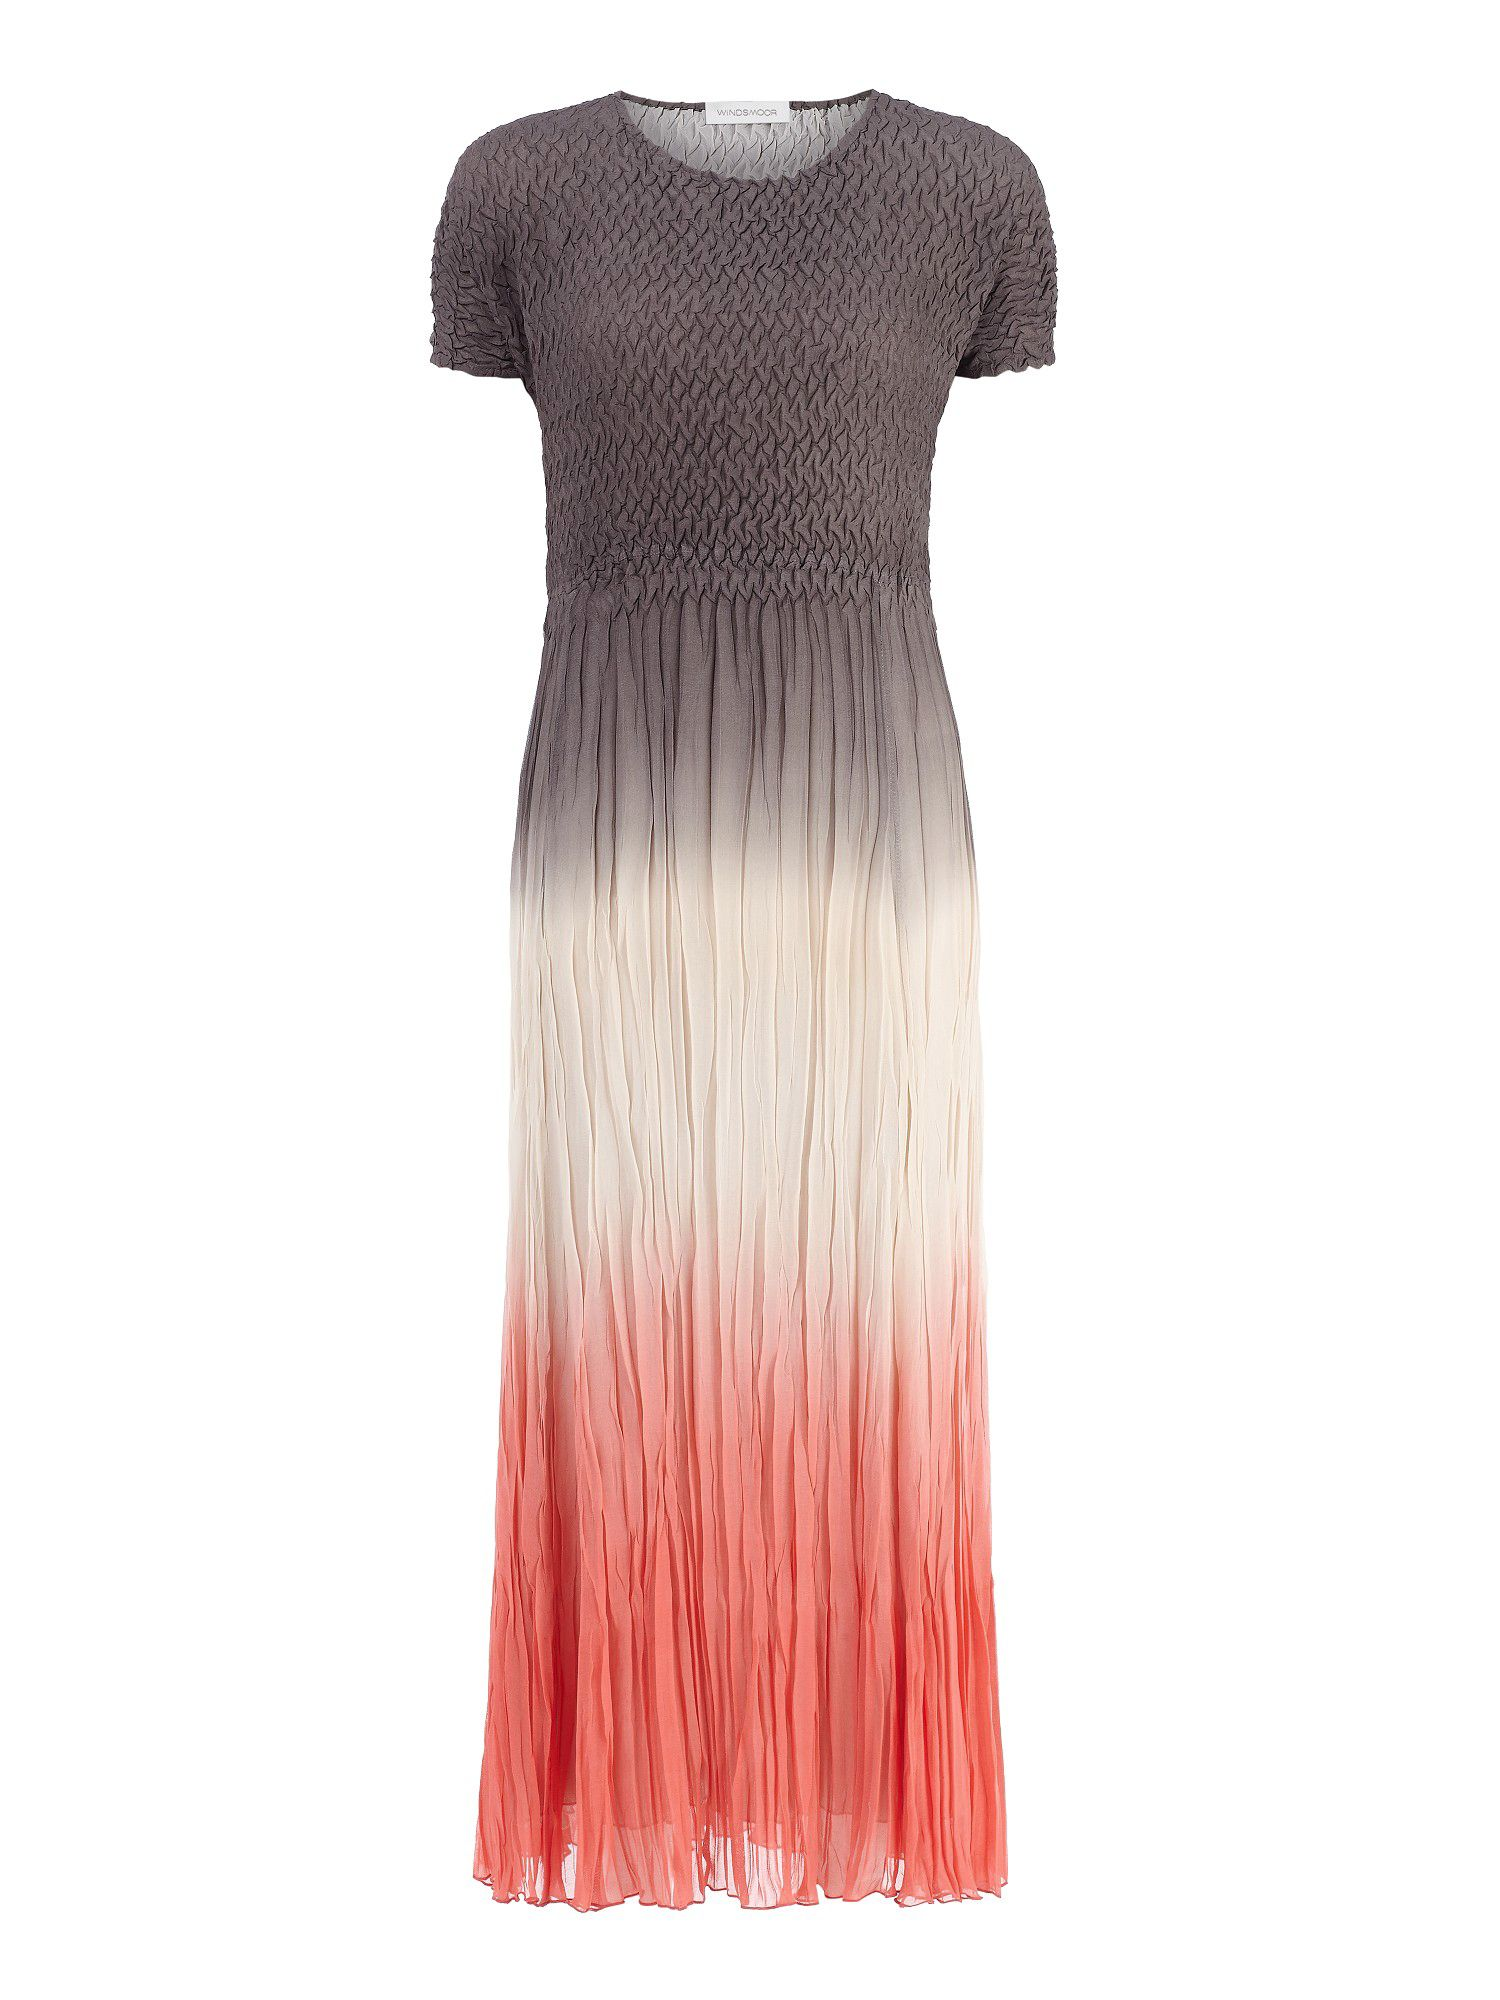 Ombre crinkle dress